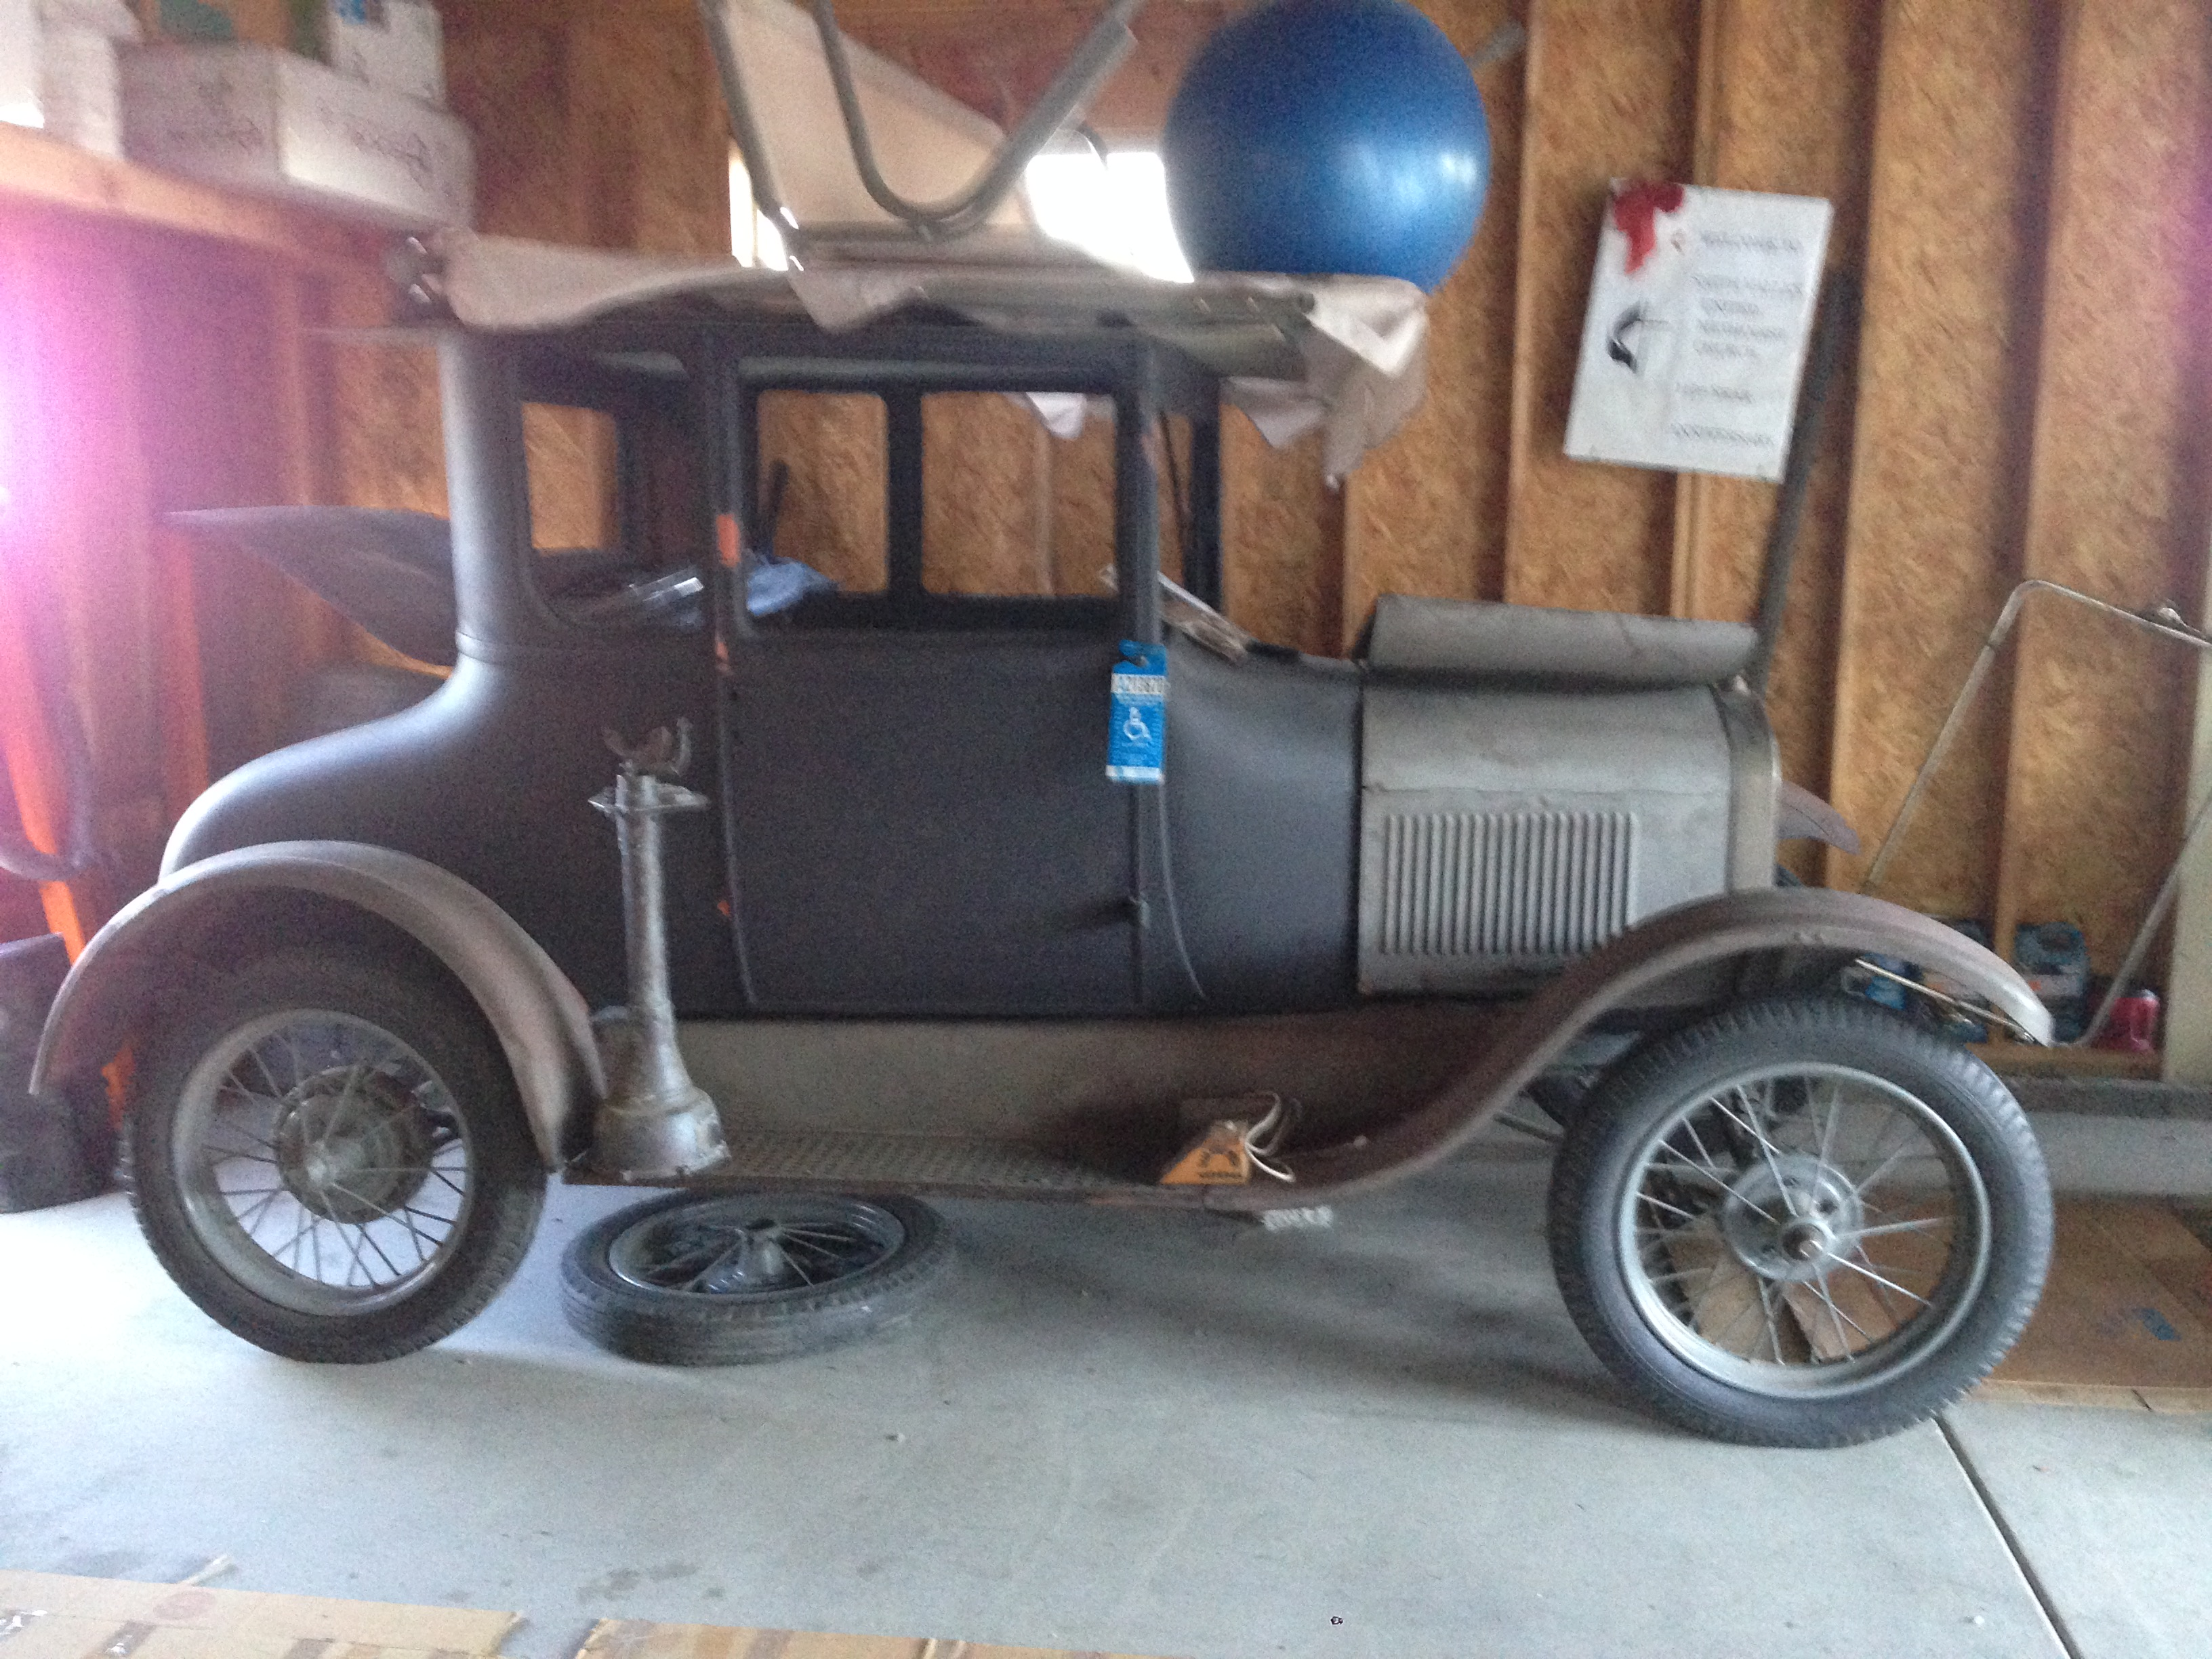 27 Model T coupe - Cars For Sale - Antique Automobile Club of ...